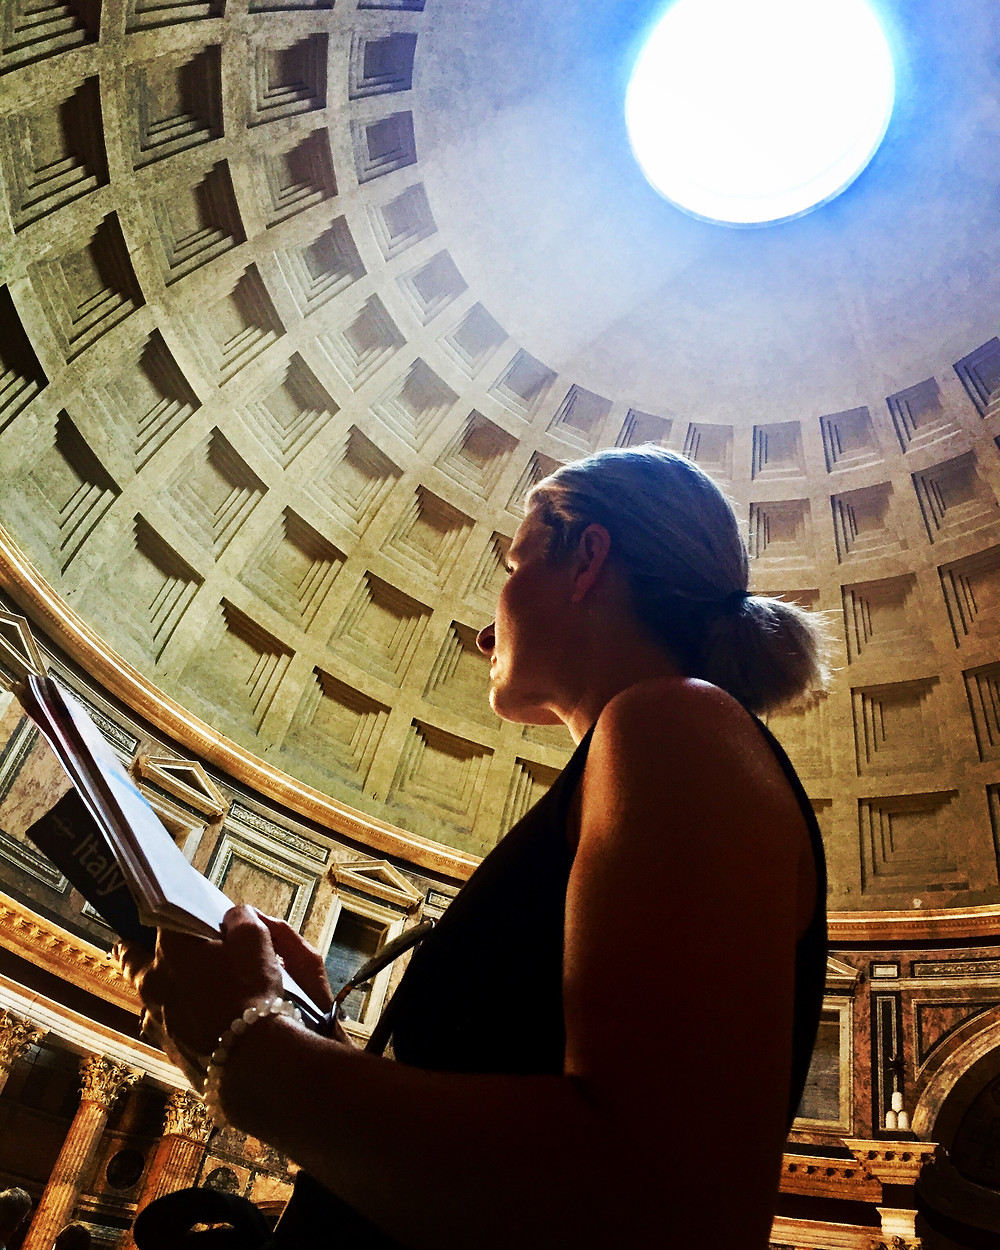 Woman silhouetted reading Lonely Planet guide inside the Pantheon in Rome